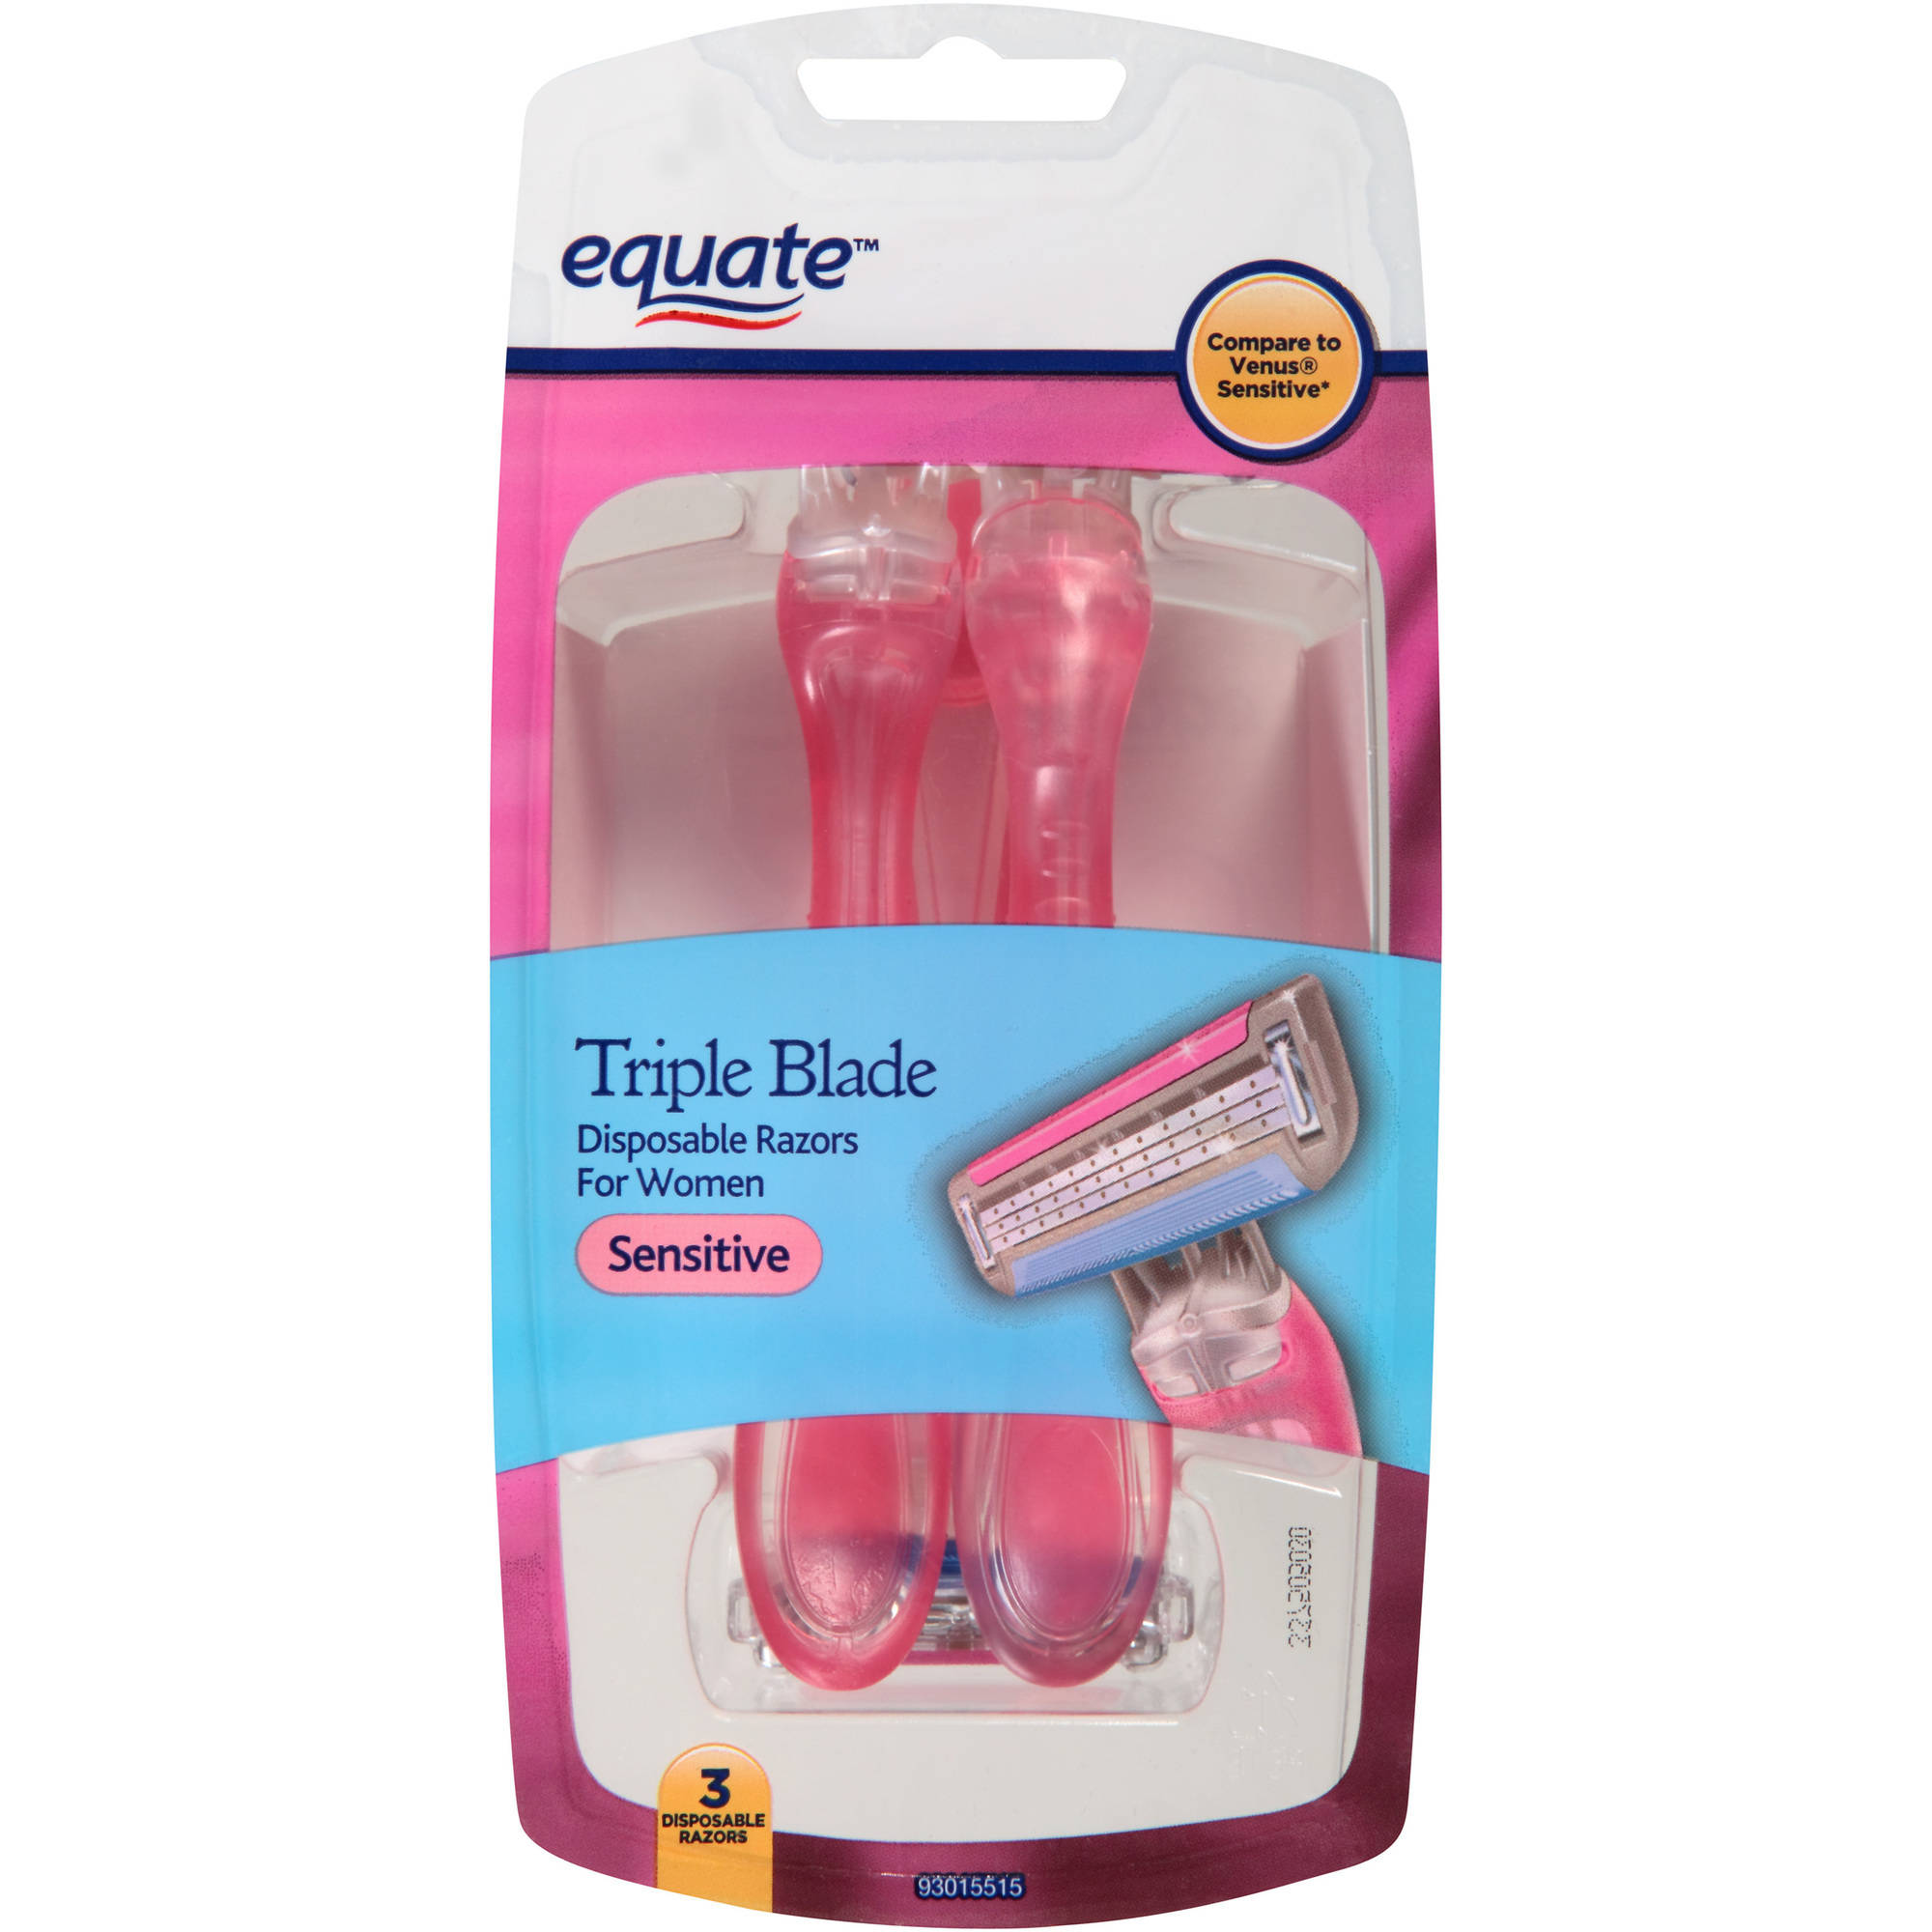 Equate Sensitive Triple Blade Disposable Razors for Woman, 3 count